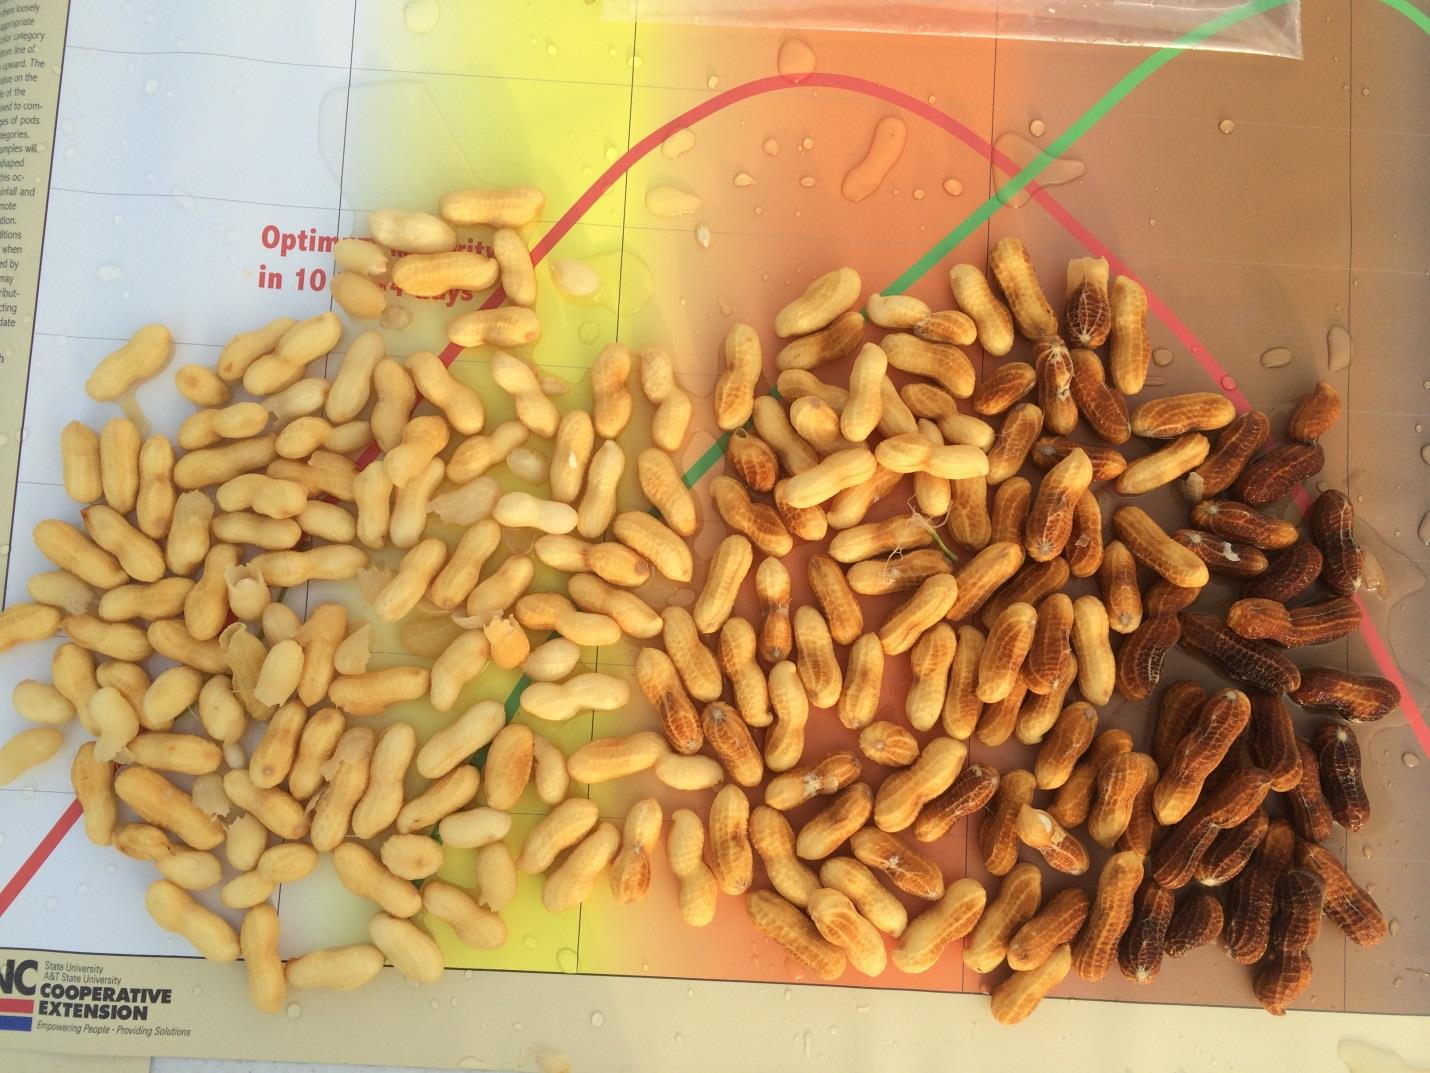 shelled peanuts showing range of color